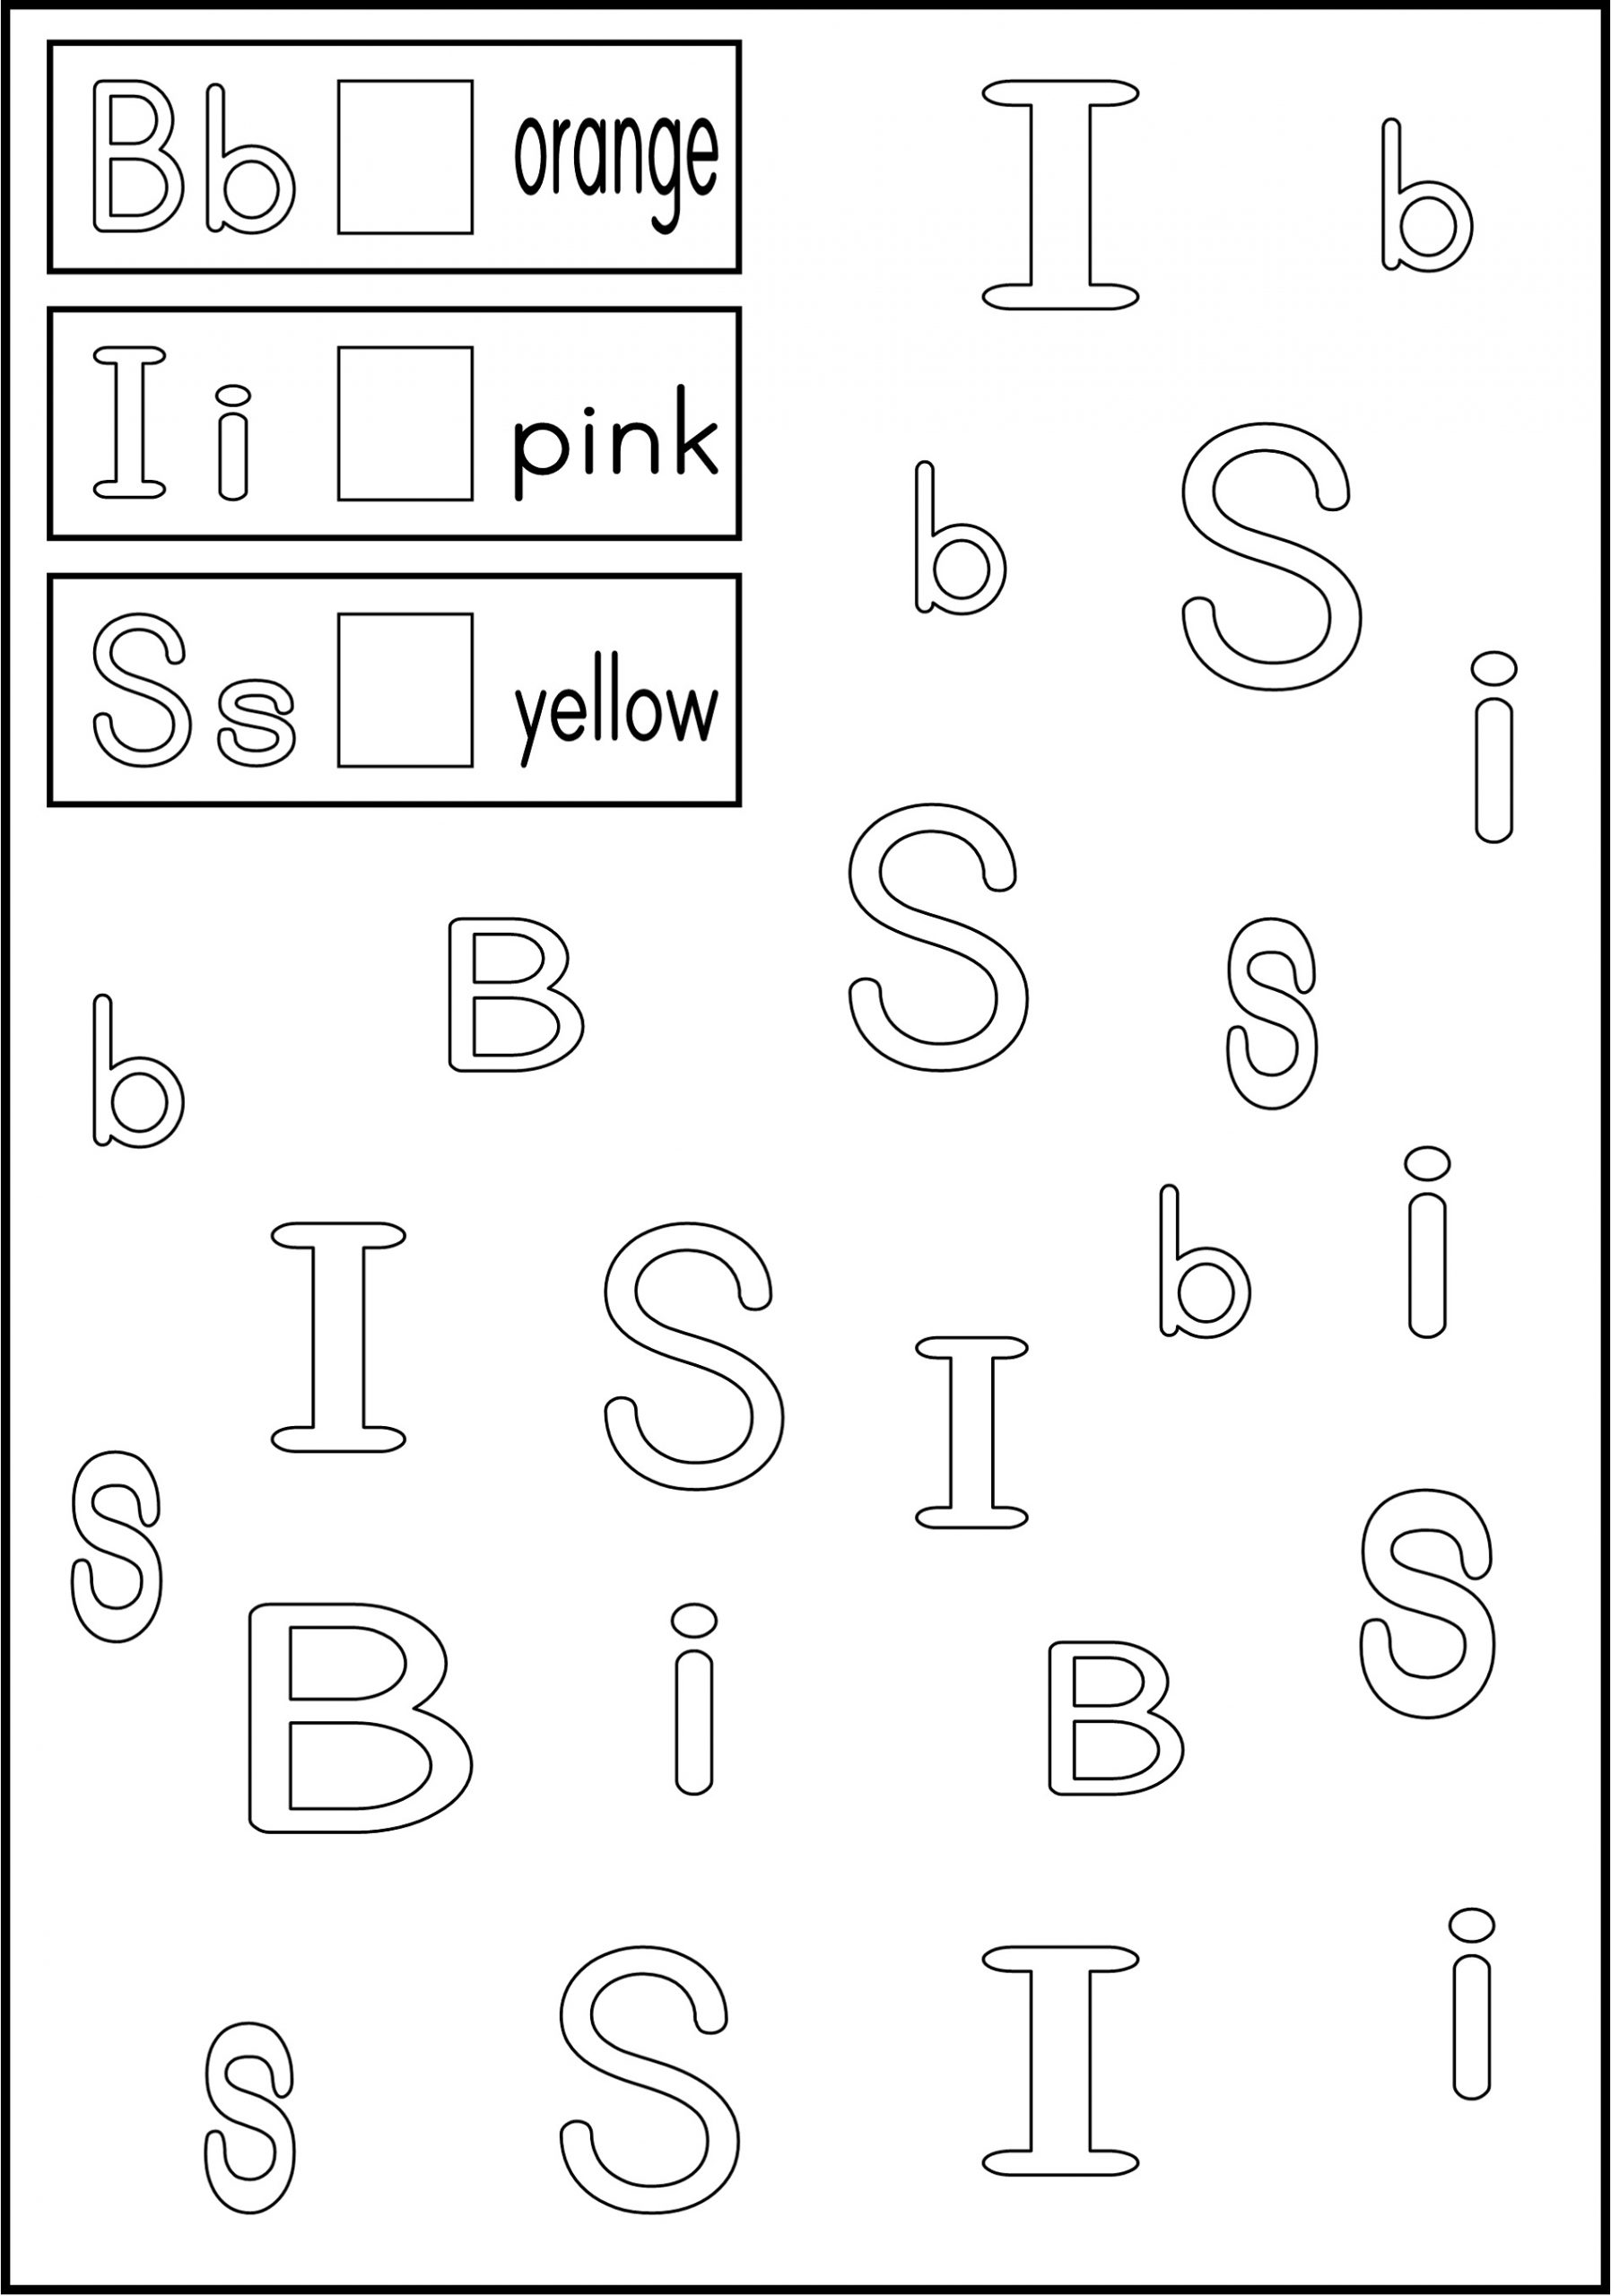 Coloring Free Abc Worksheets For Pre-K